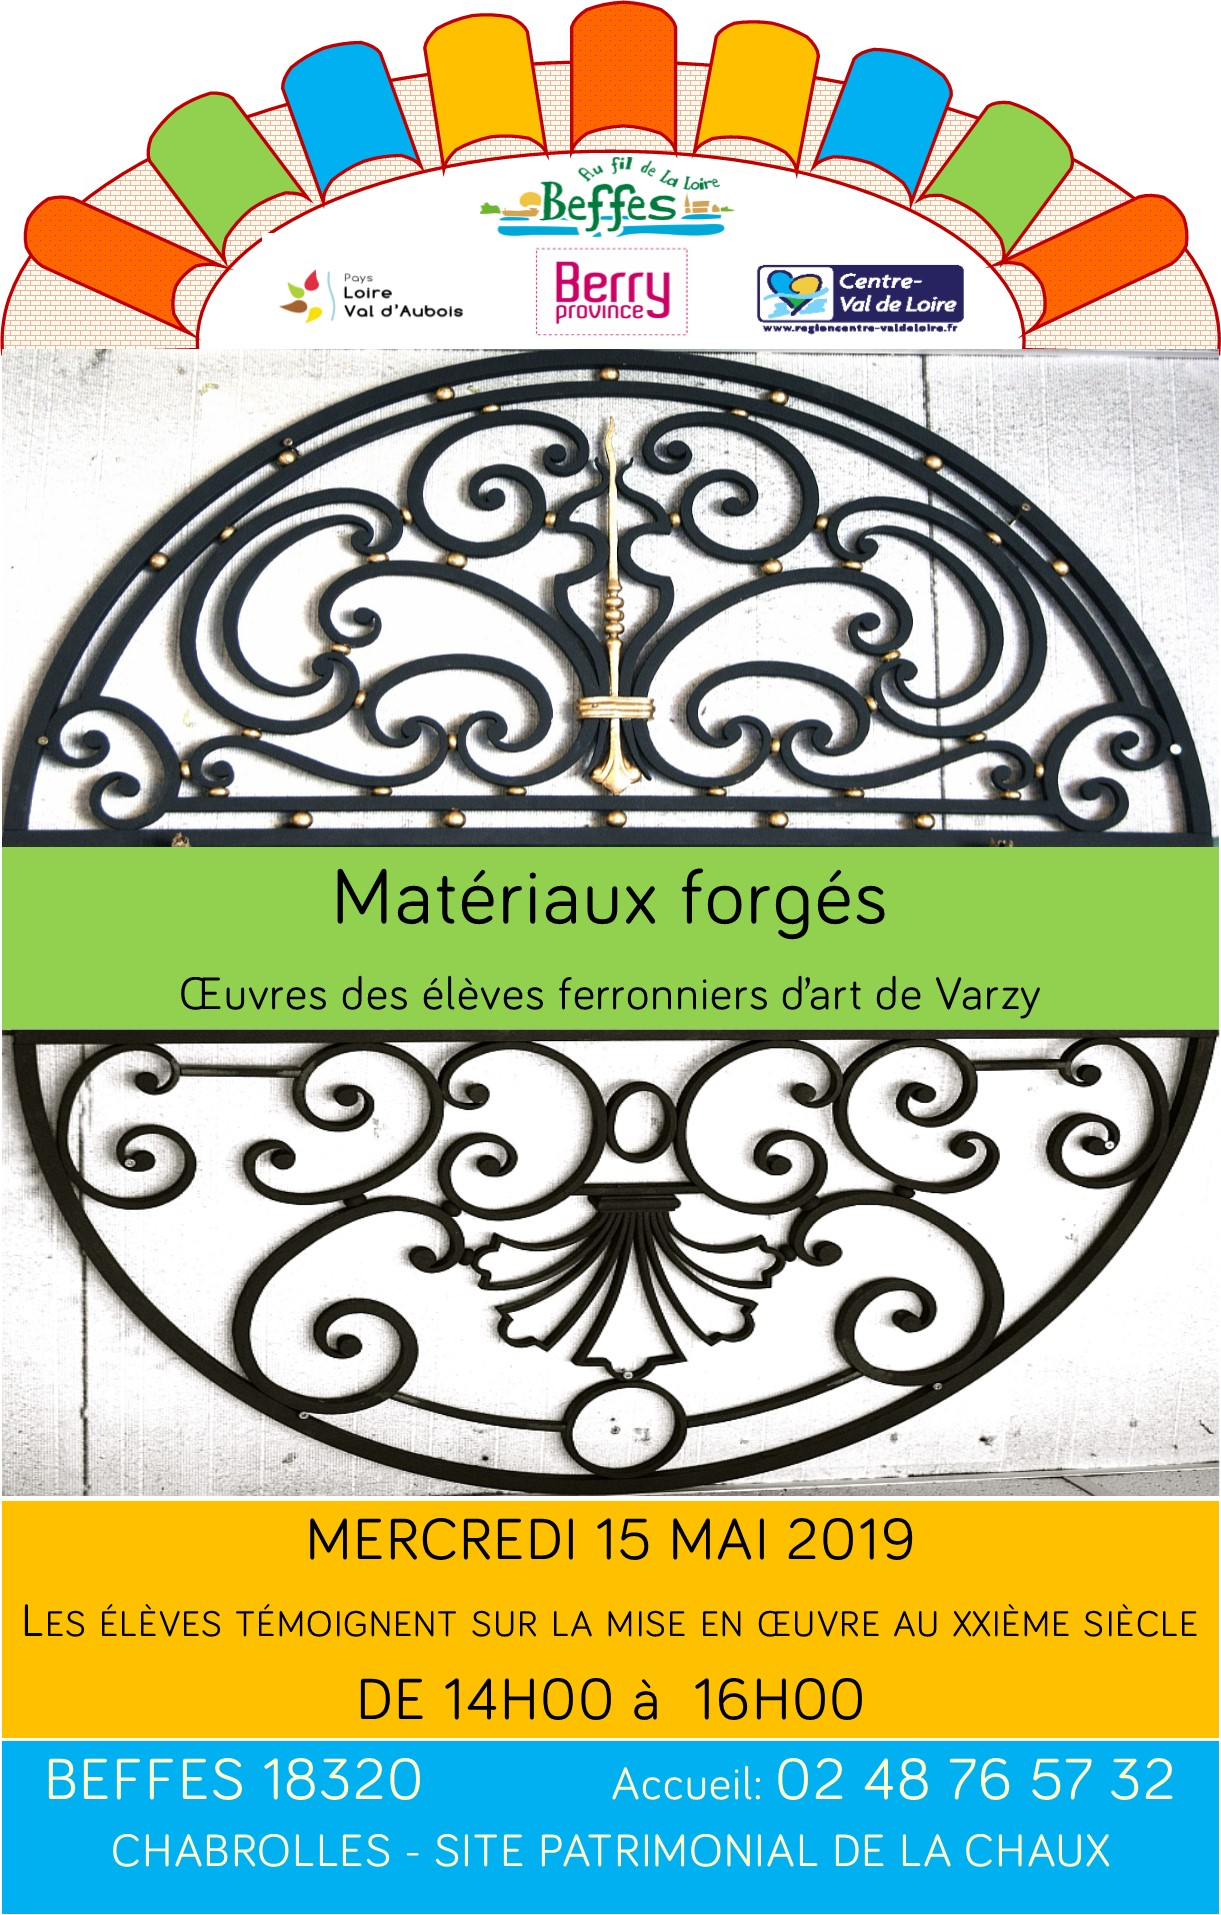 Affiche materiaux forges